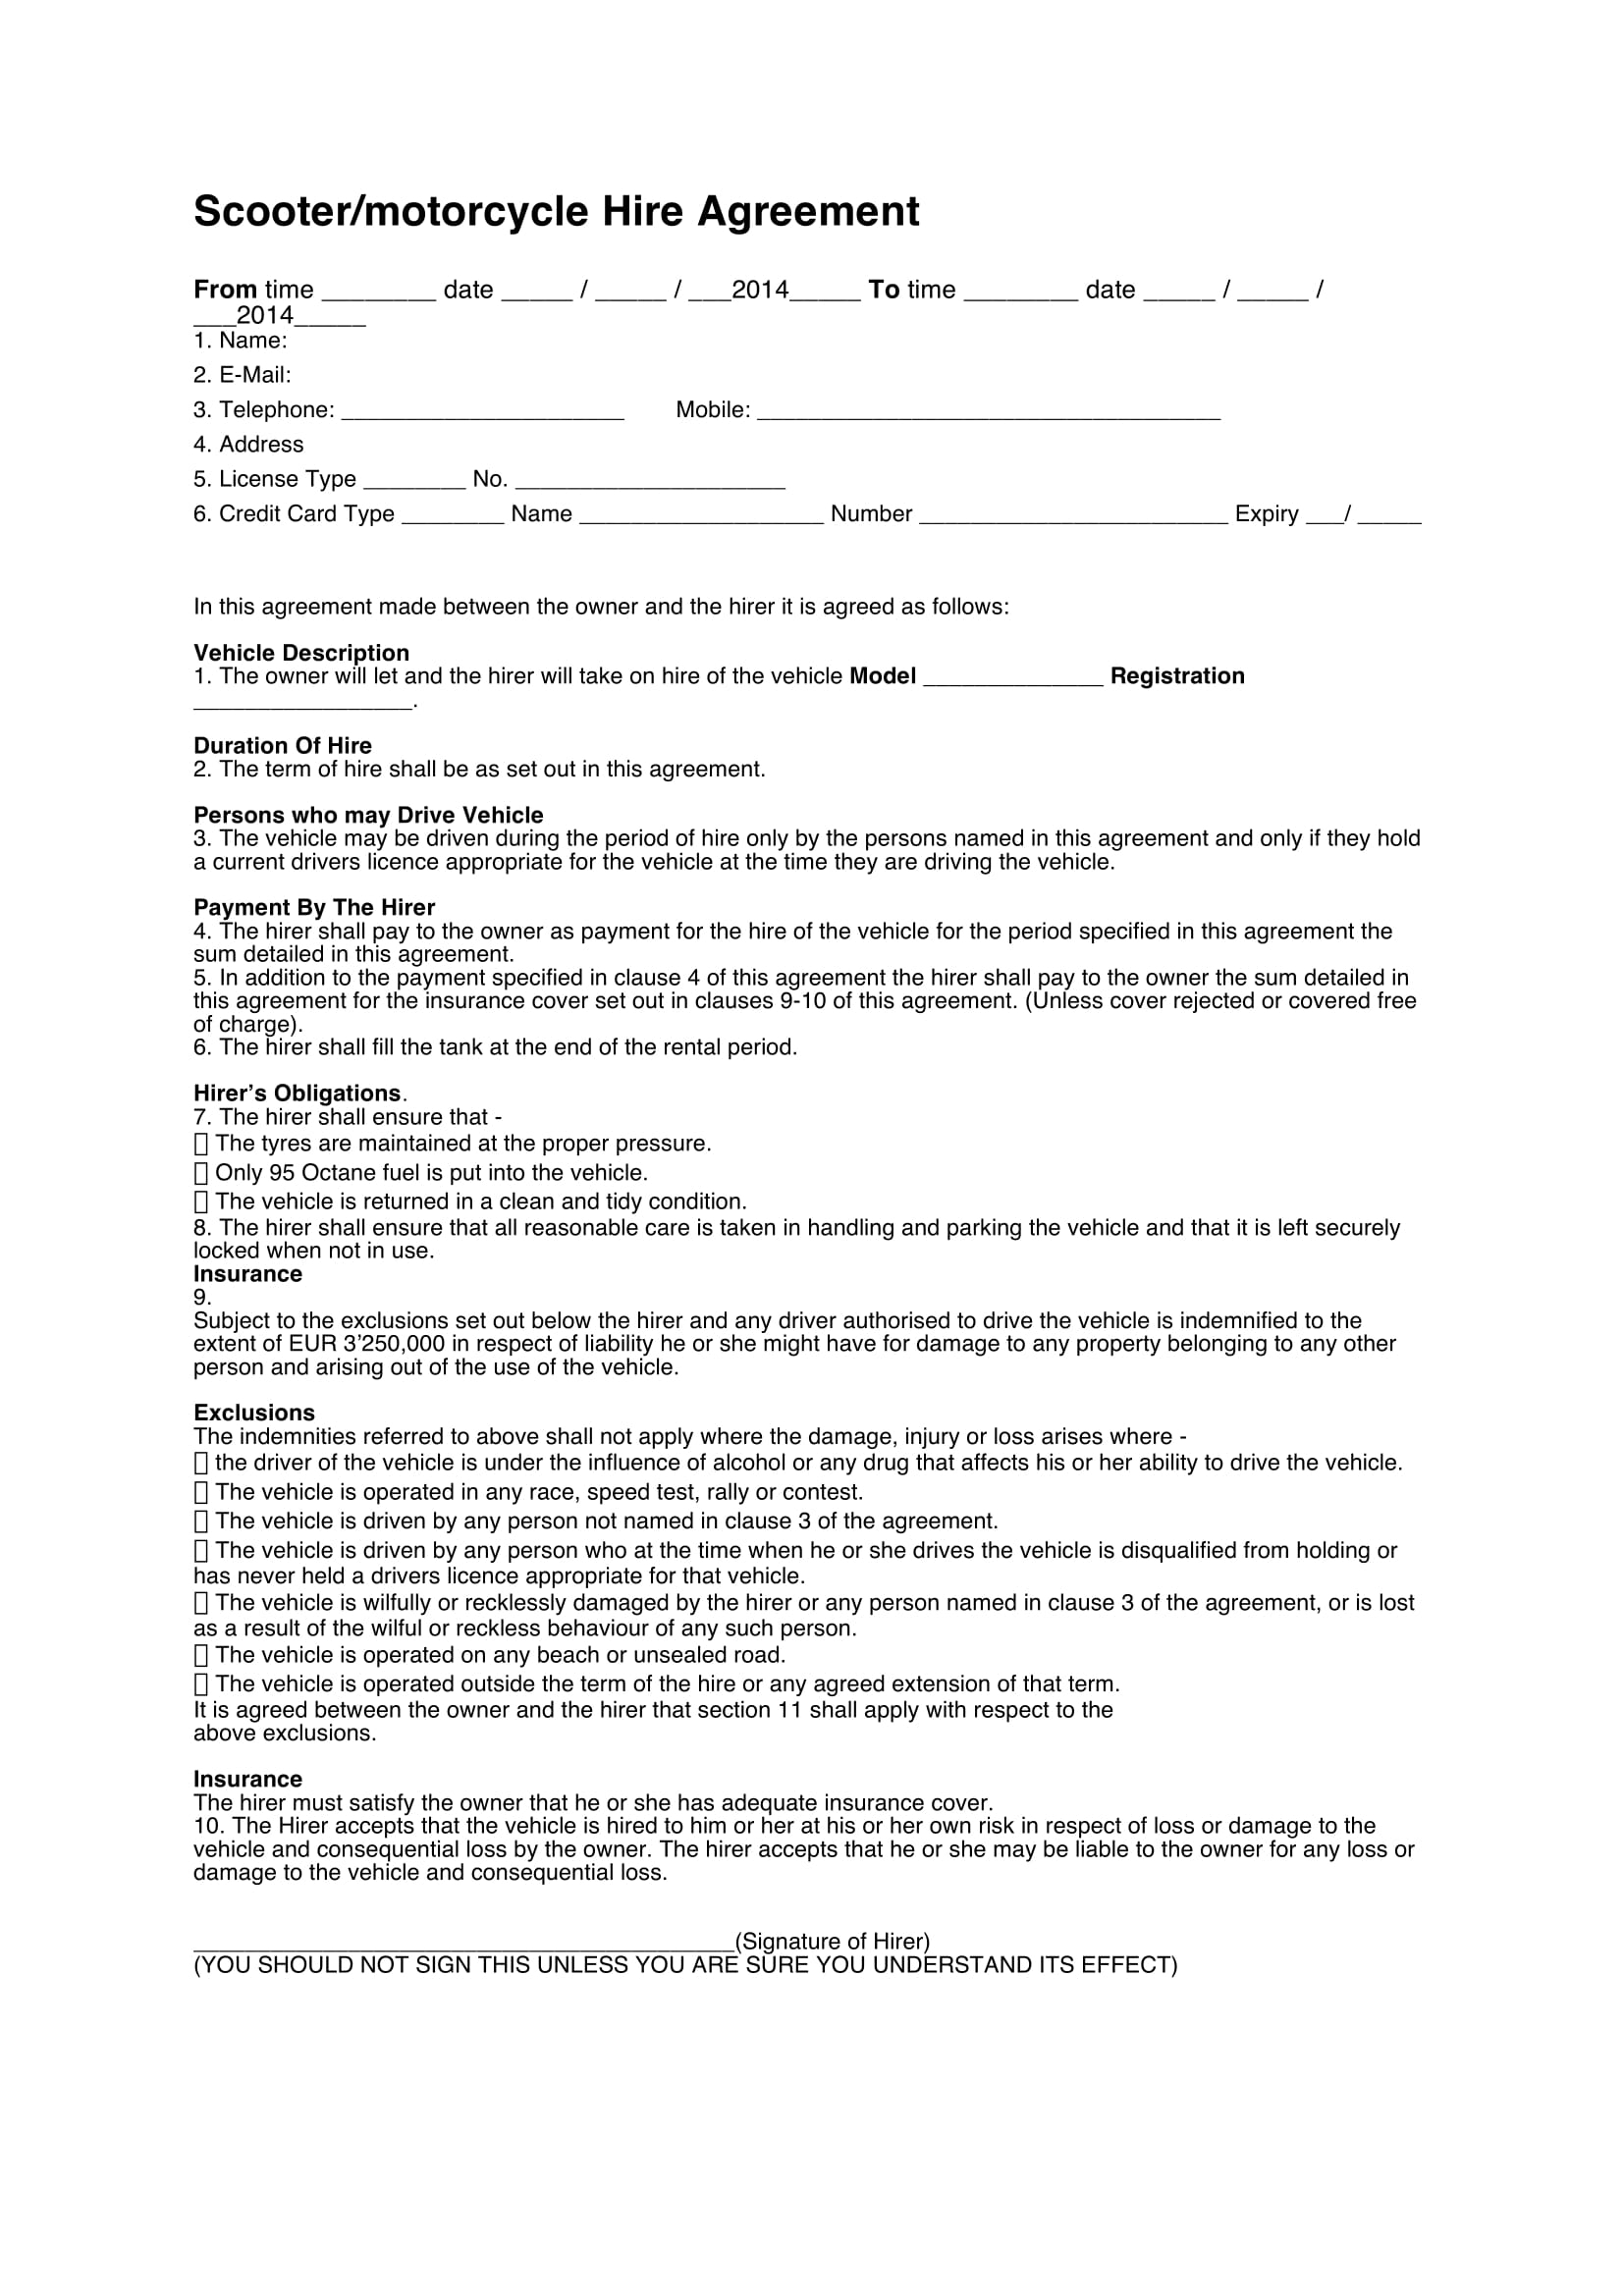 motorcycle hire agreement contract form 1